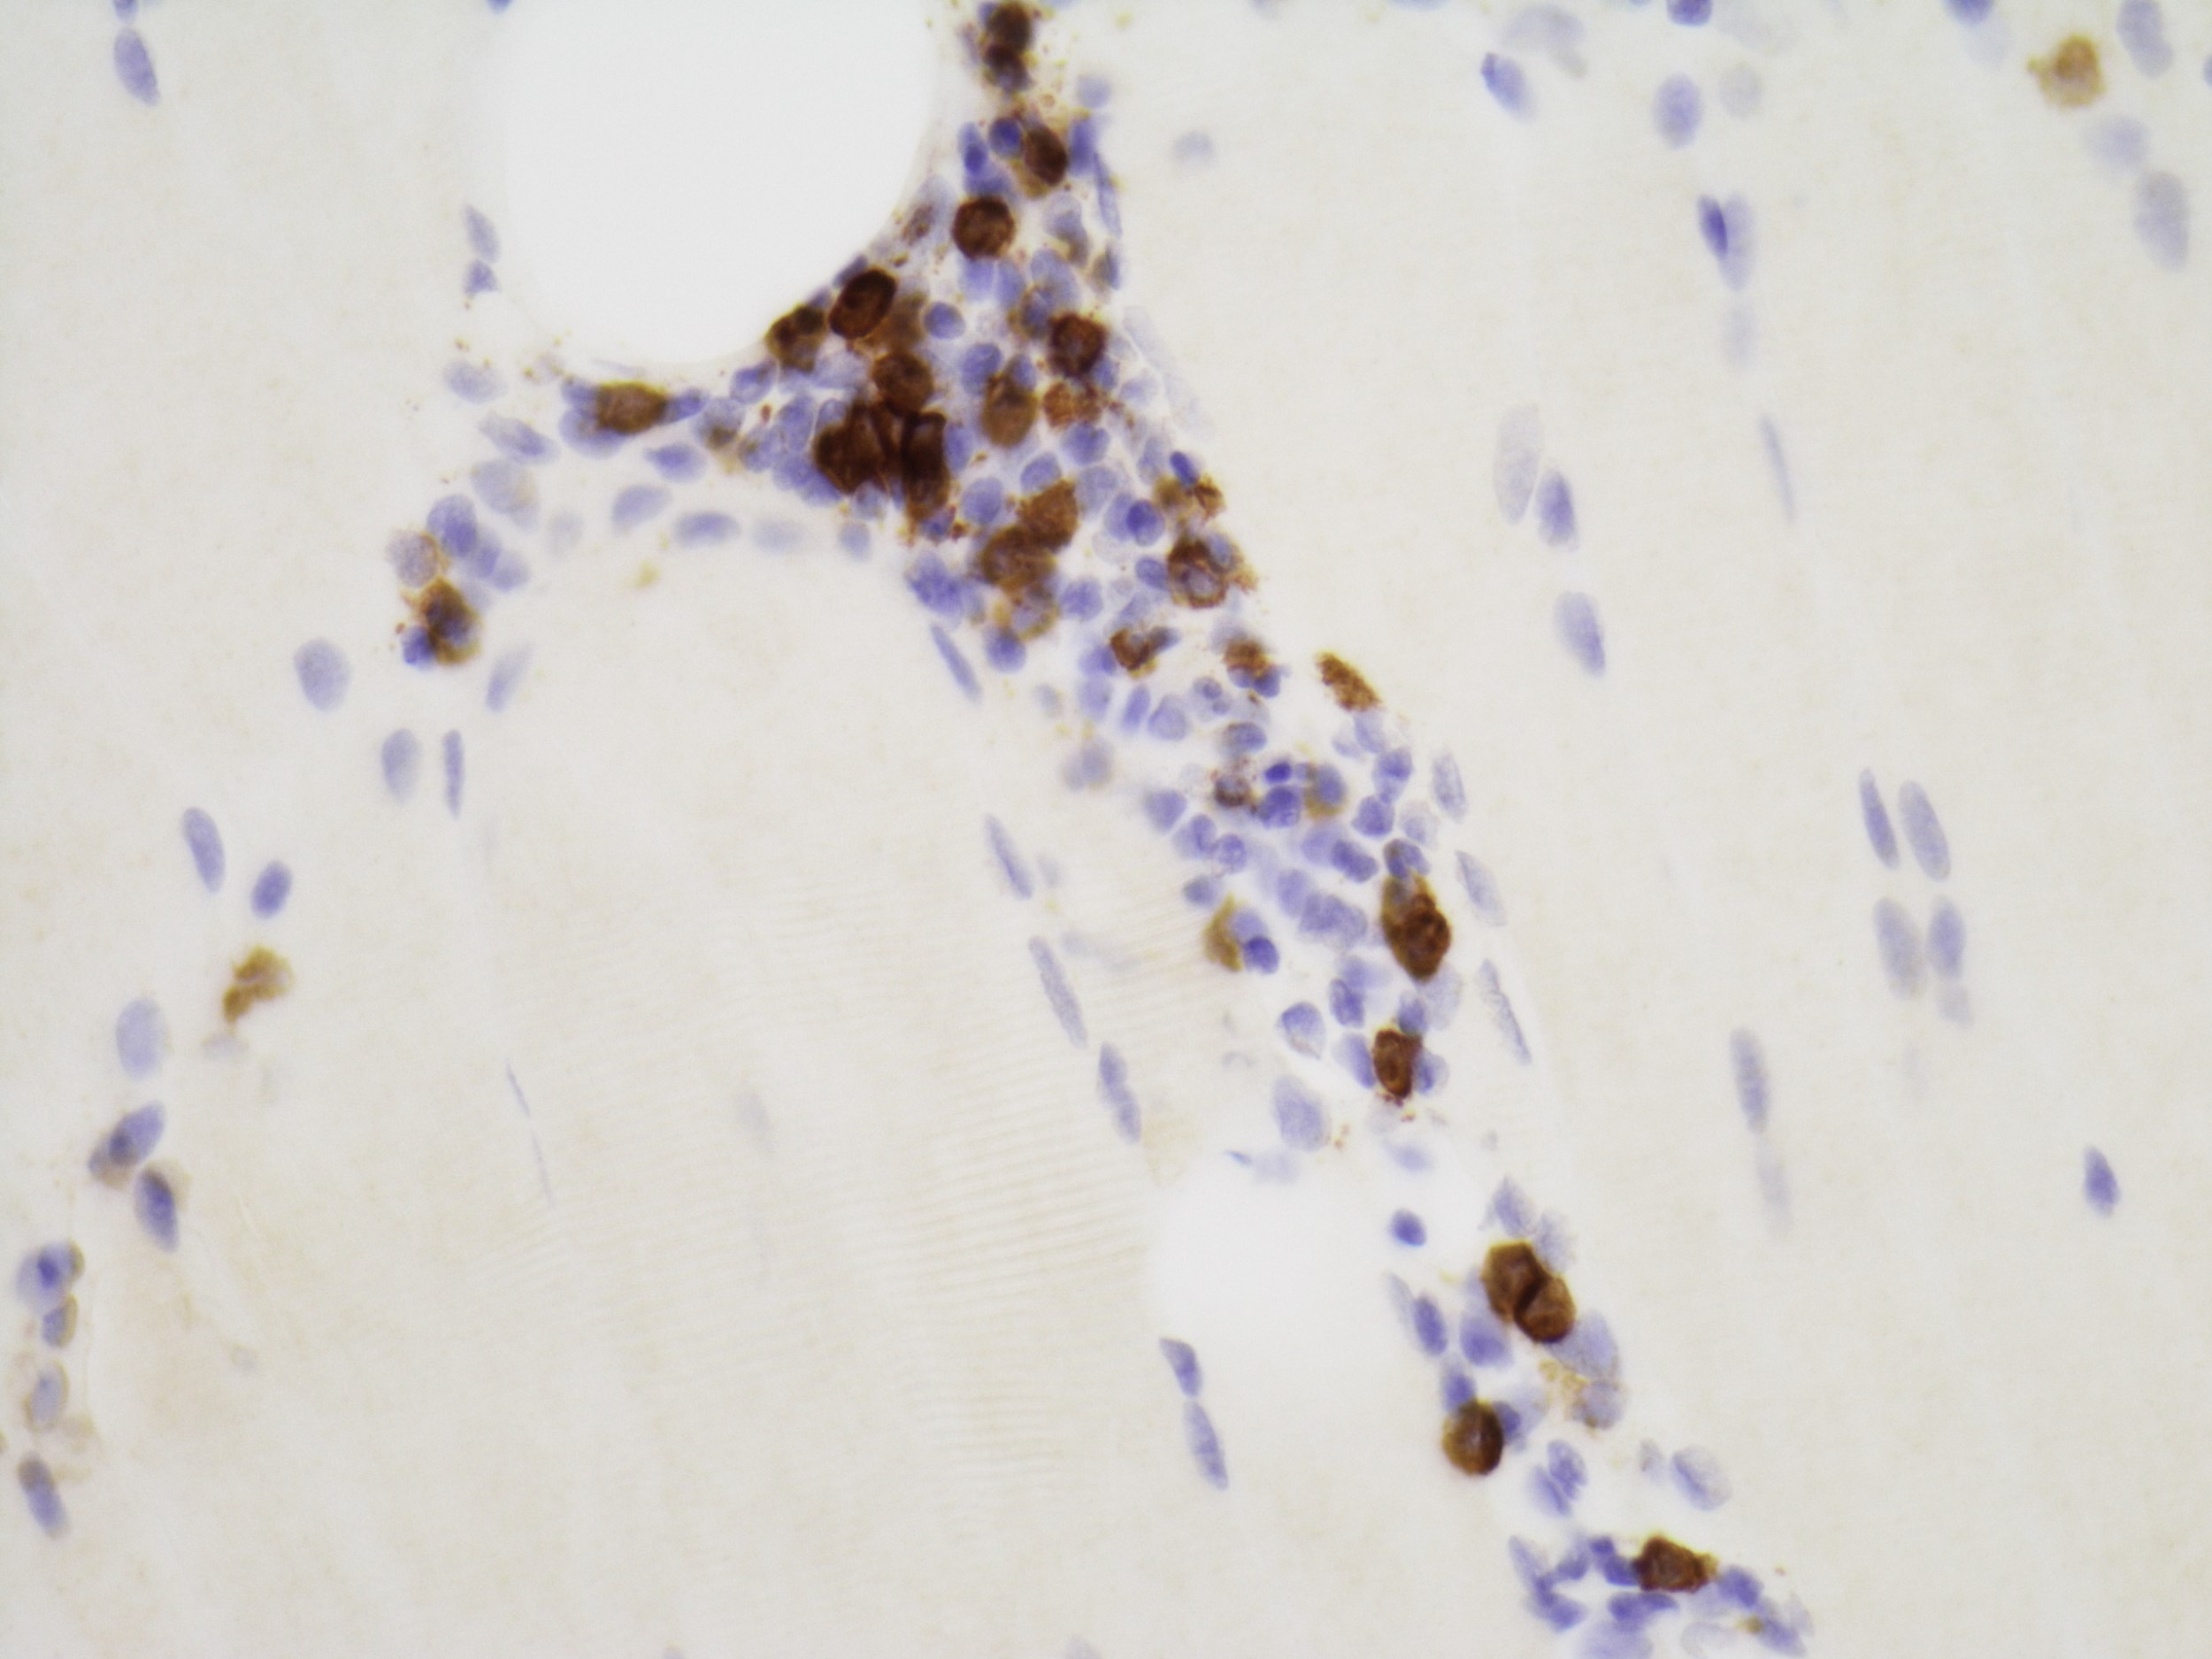 Predominantly CD8+ lymphocytic infiltrate